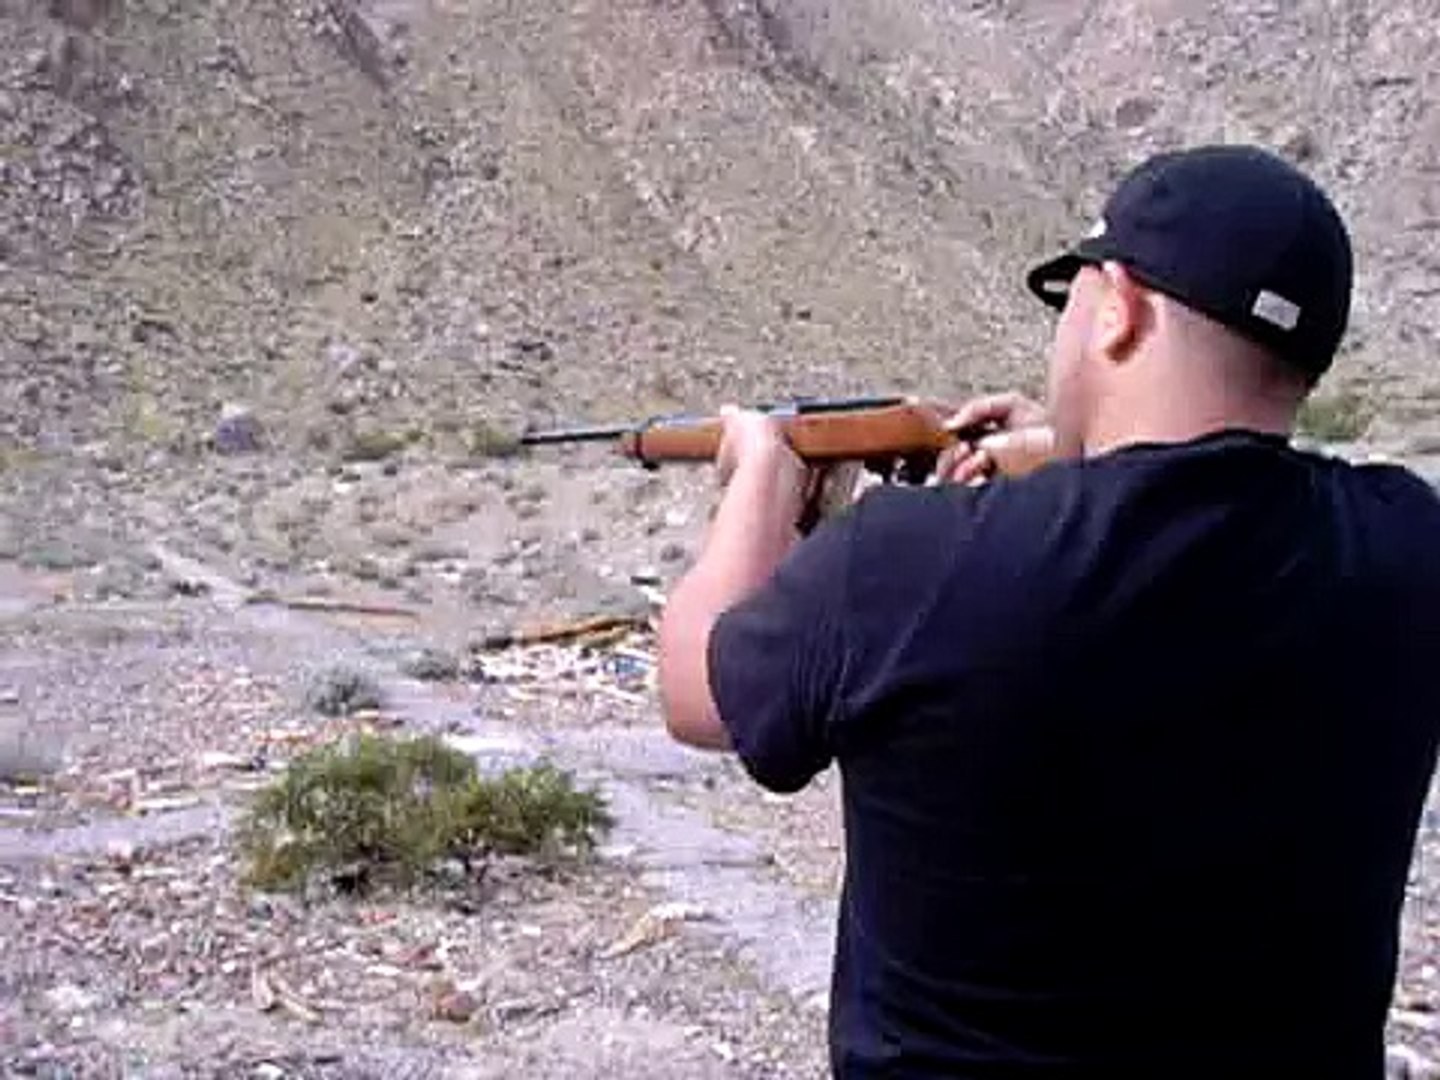 22 cal rifle with 30 round mag